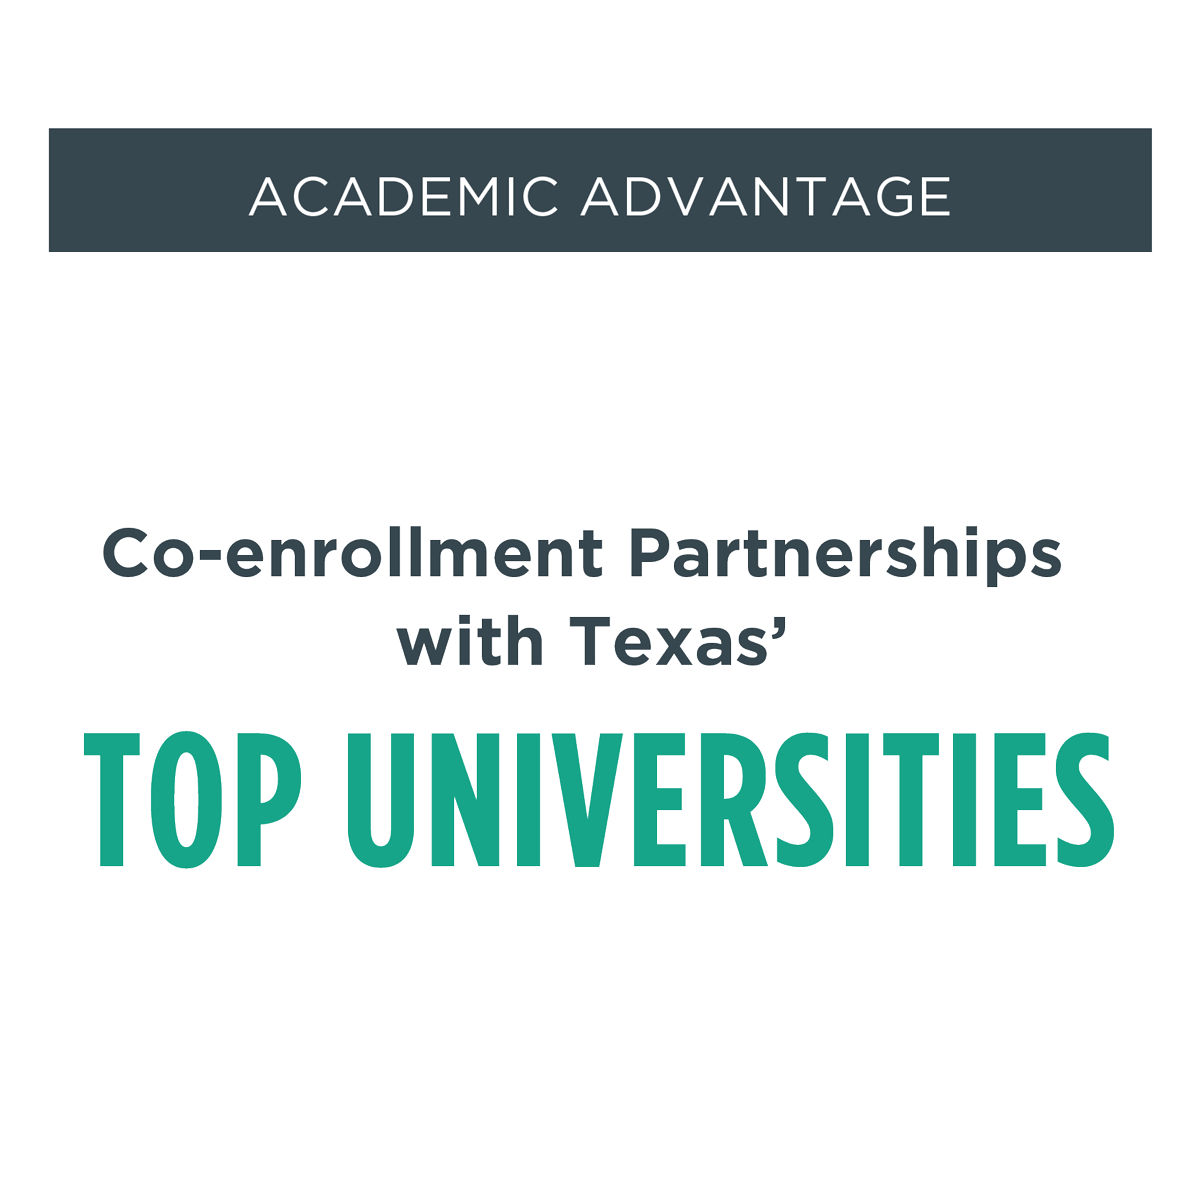 Academic advantage - Co-enrollment Partnerships with Texas' top universities